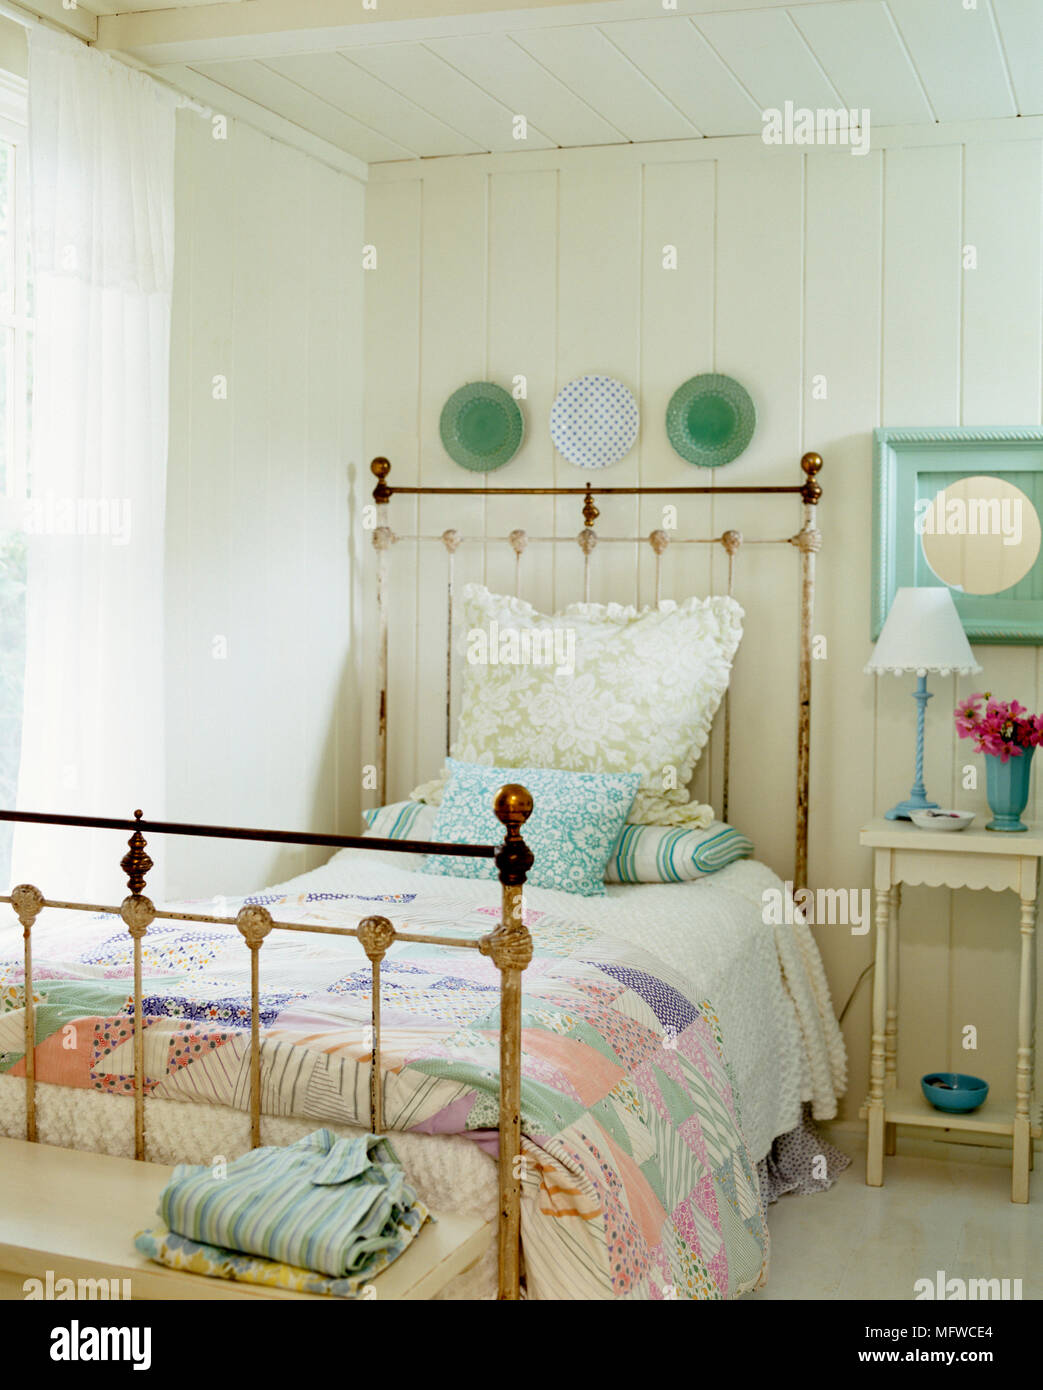 Old fashioned brass single bed in country style bedroom Stock Photo ...